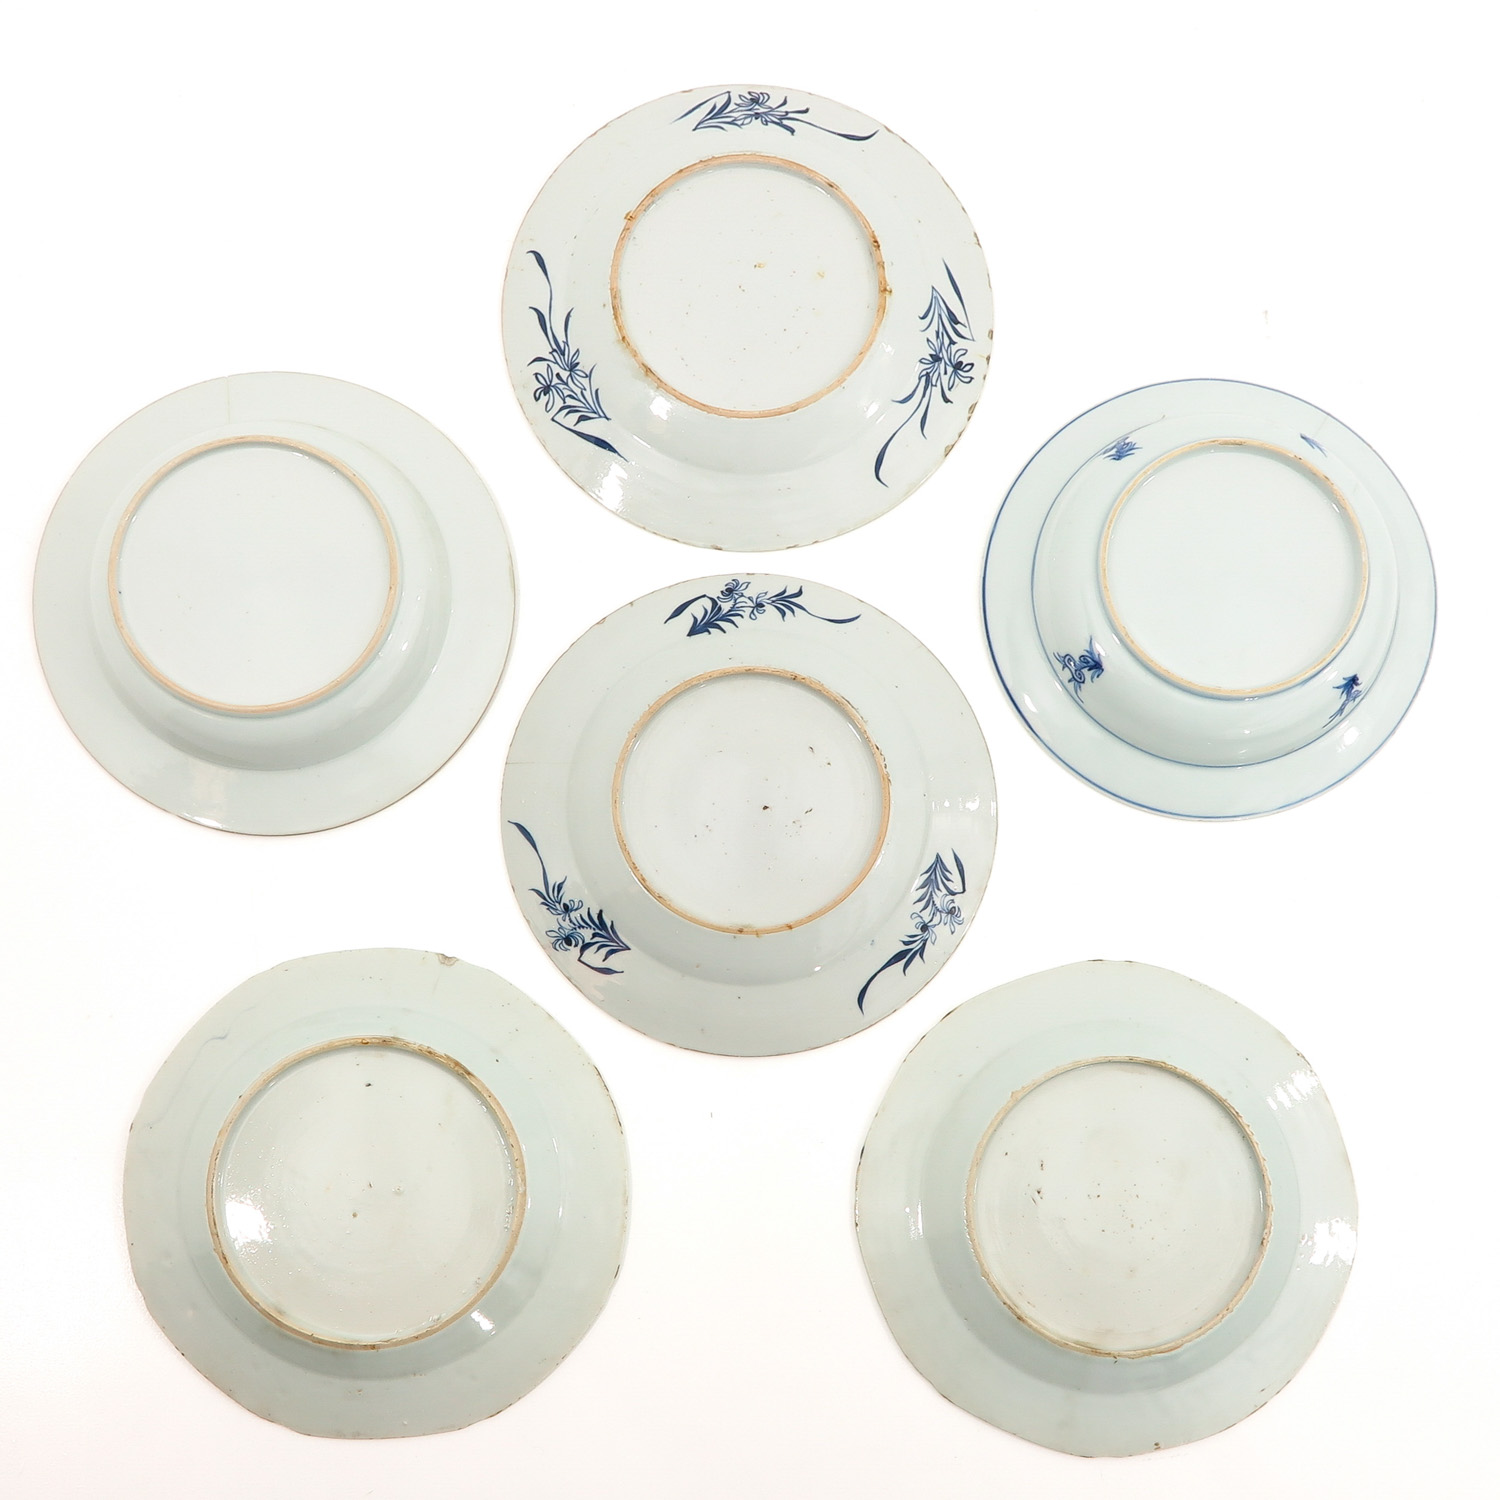 A Collection of 6 Blue and White Plates - Image 2 of 10